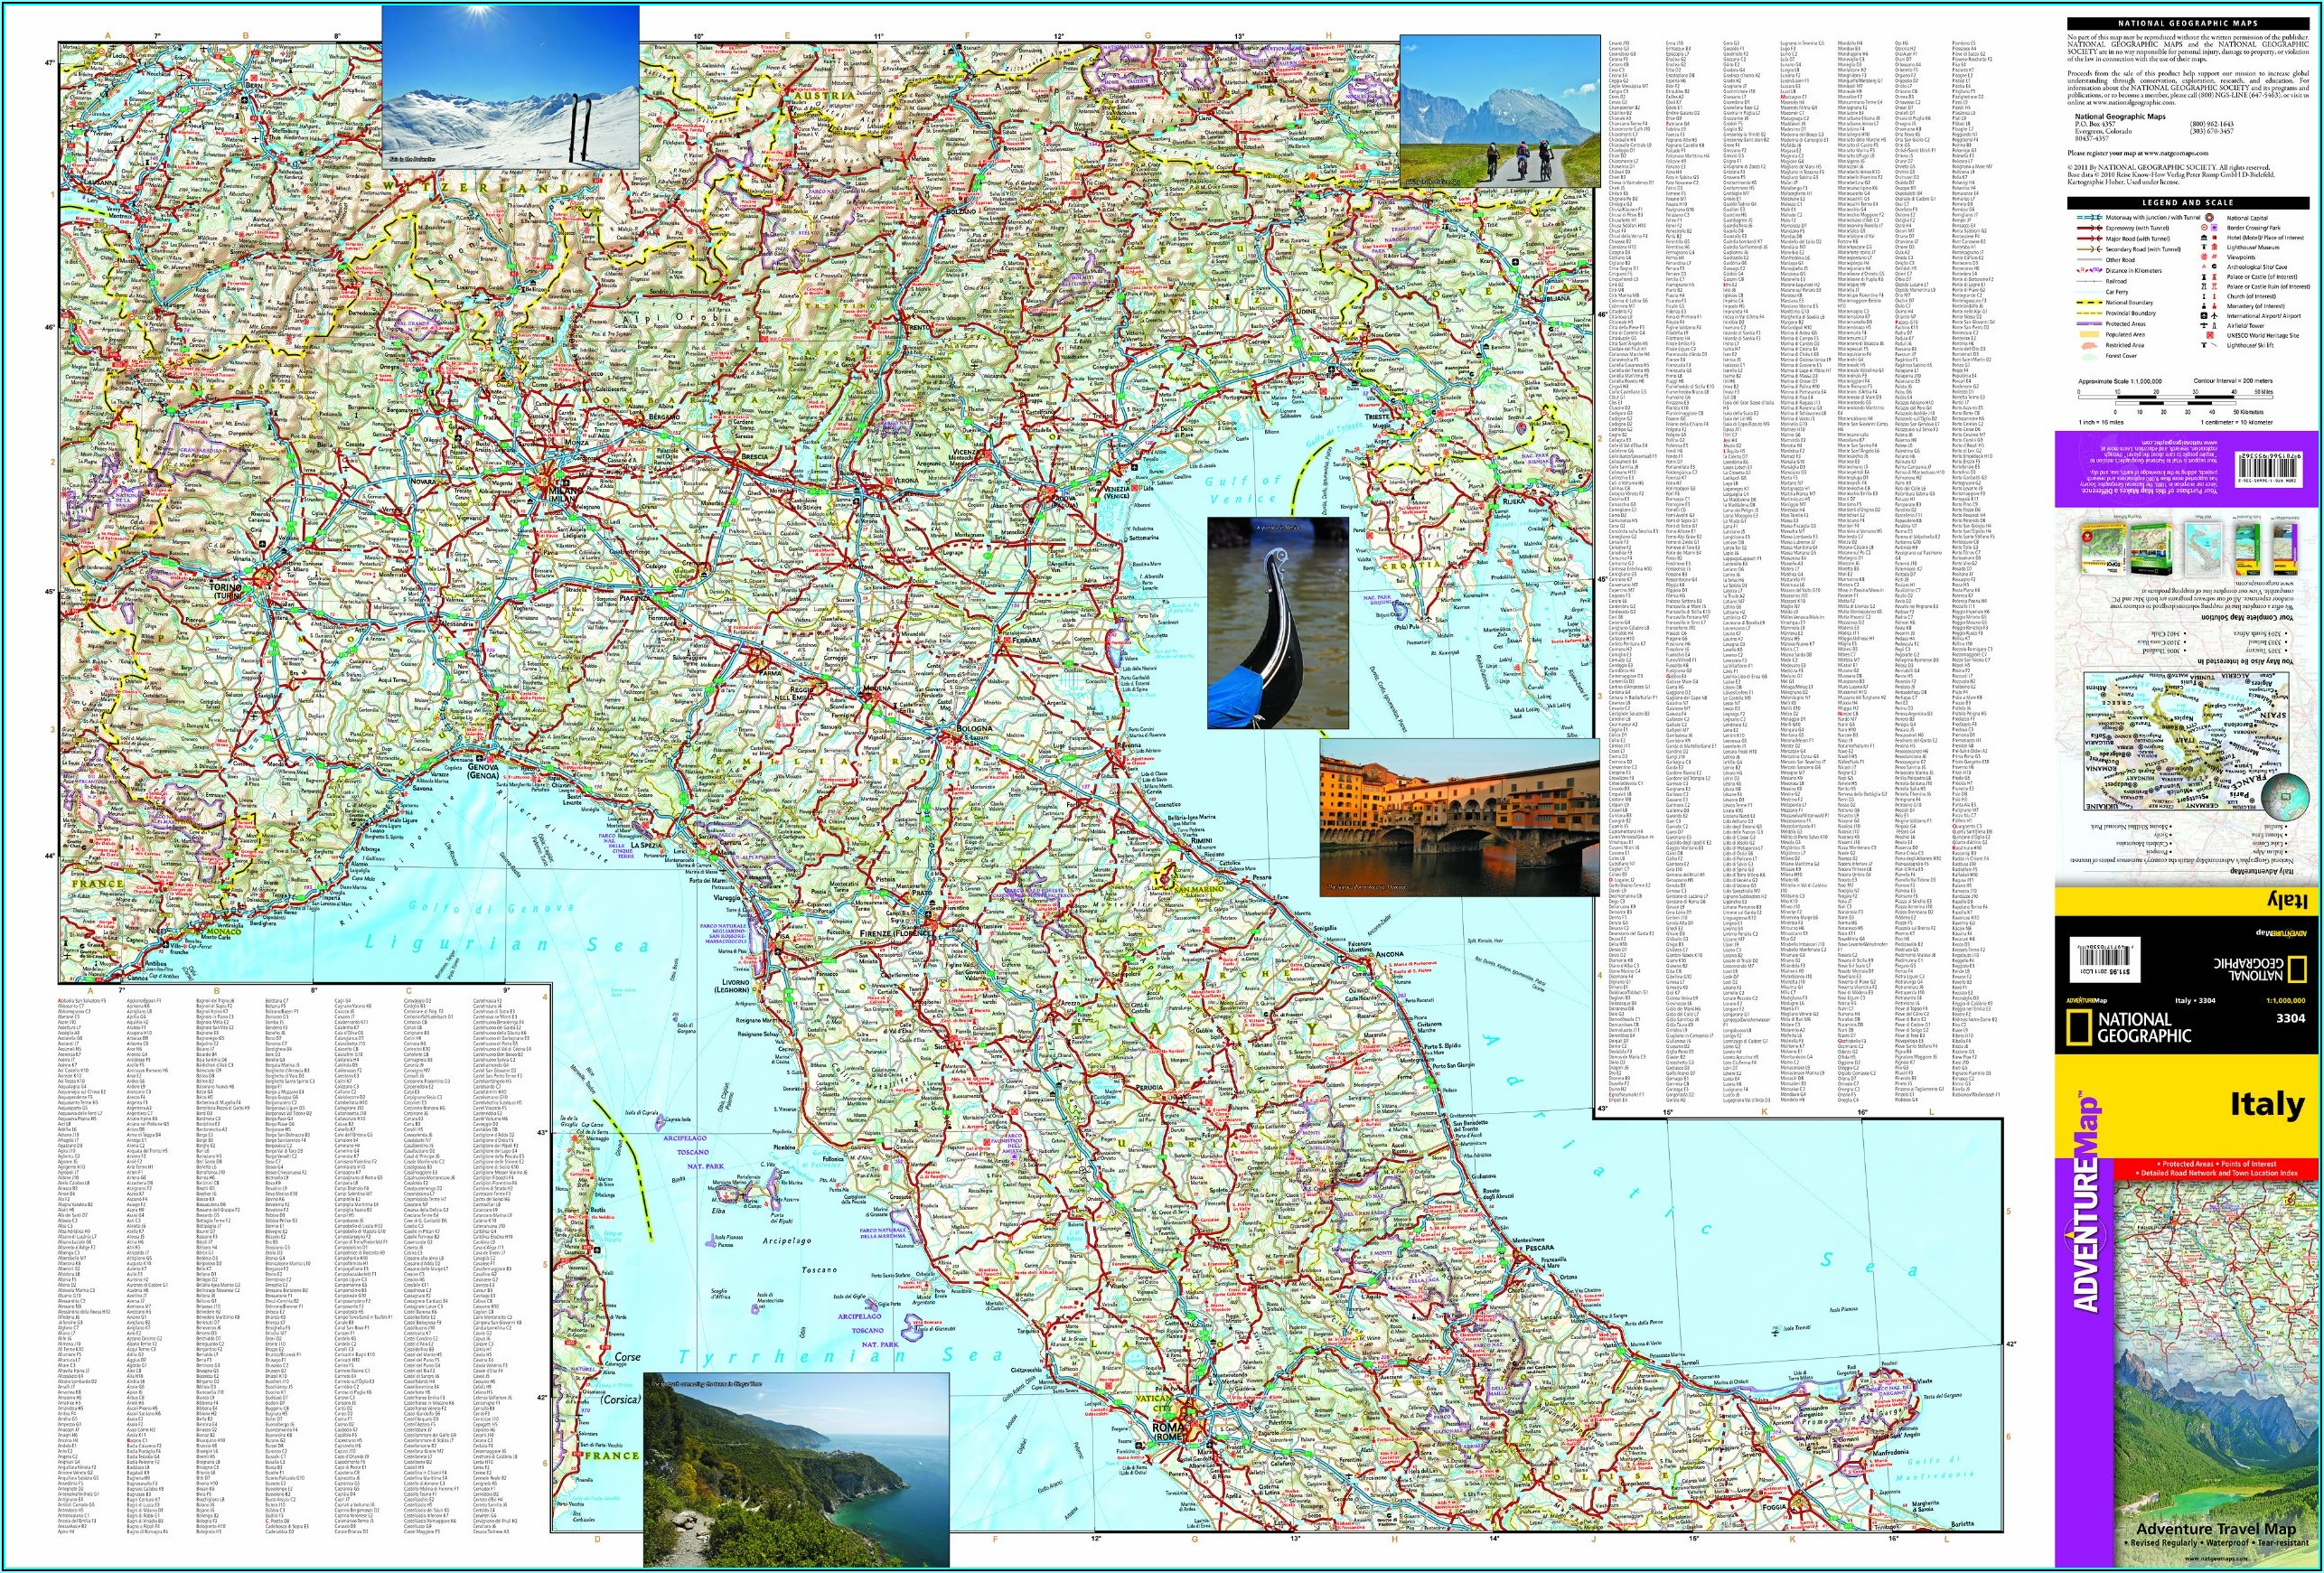 To Visit National Geographic And See The Map Of Italy